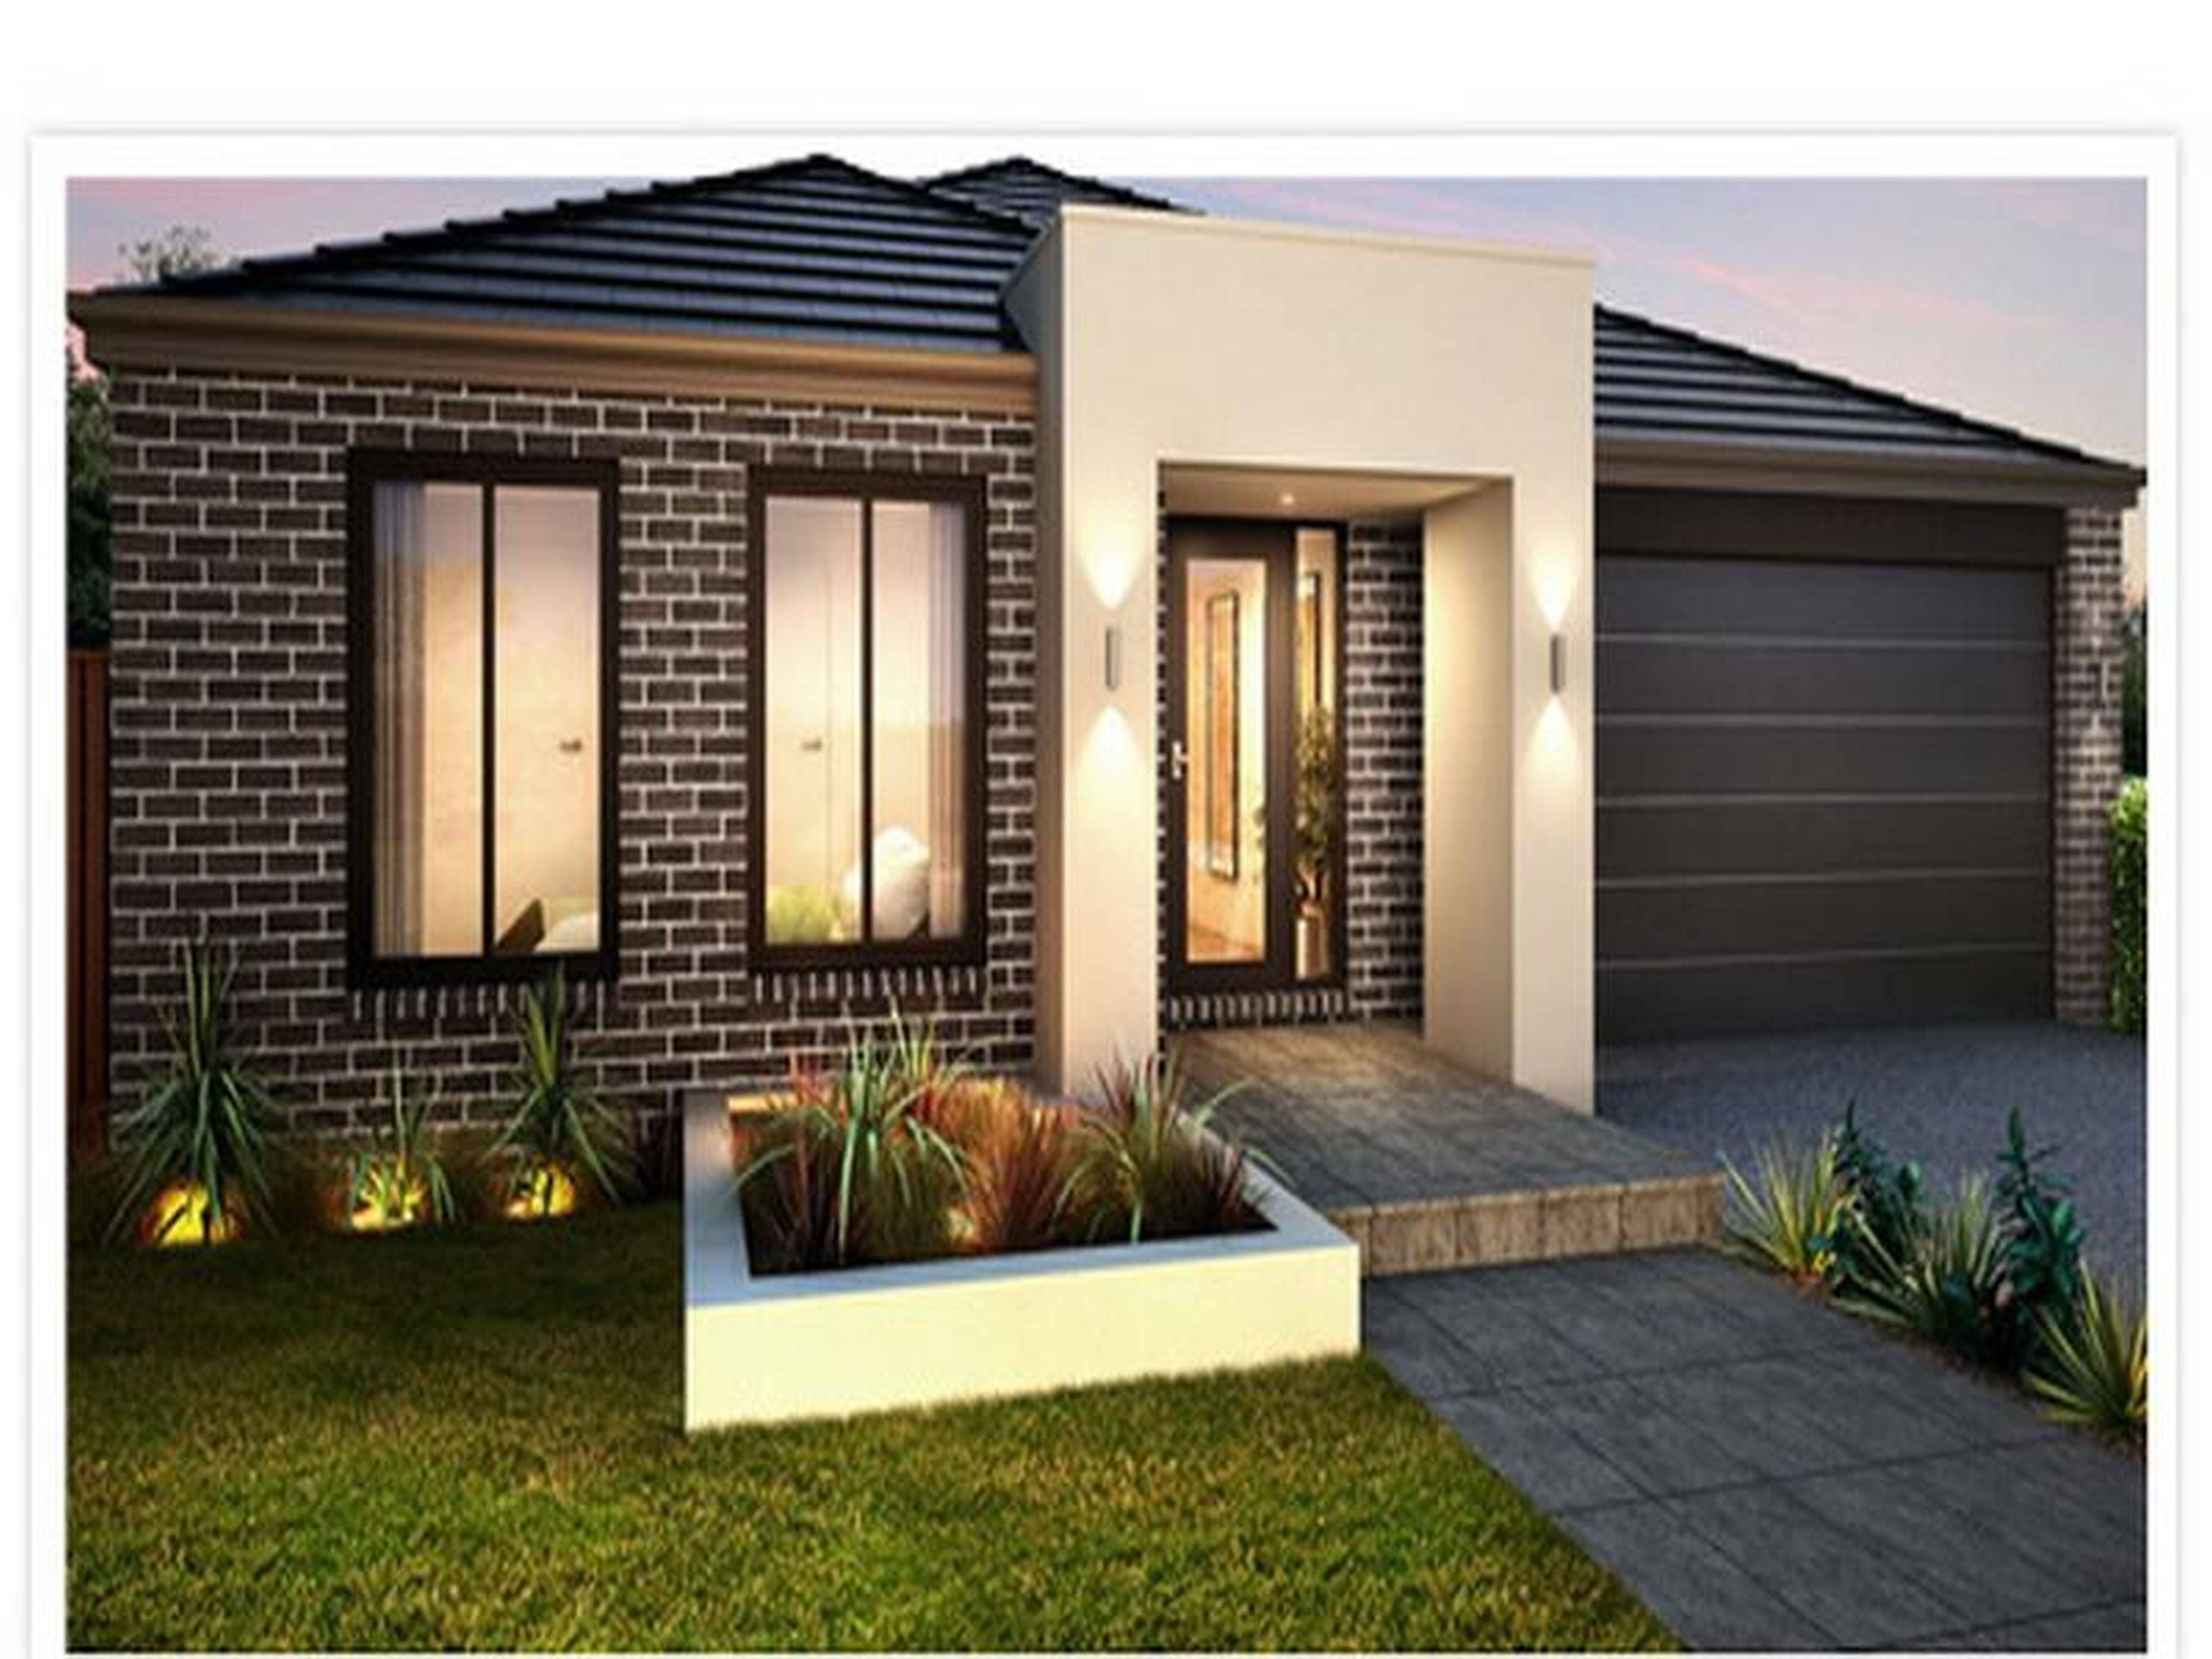 Very Best Small Modern Bungalow House Plans Home Plans Blueprints 59533